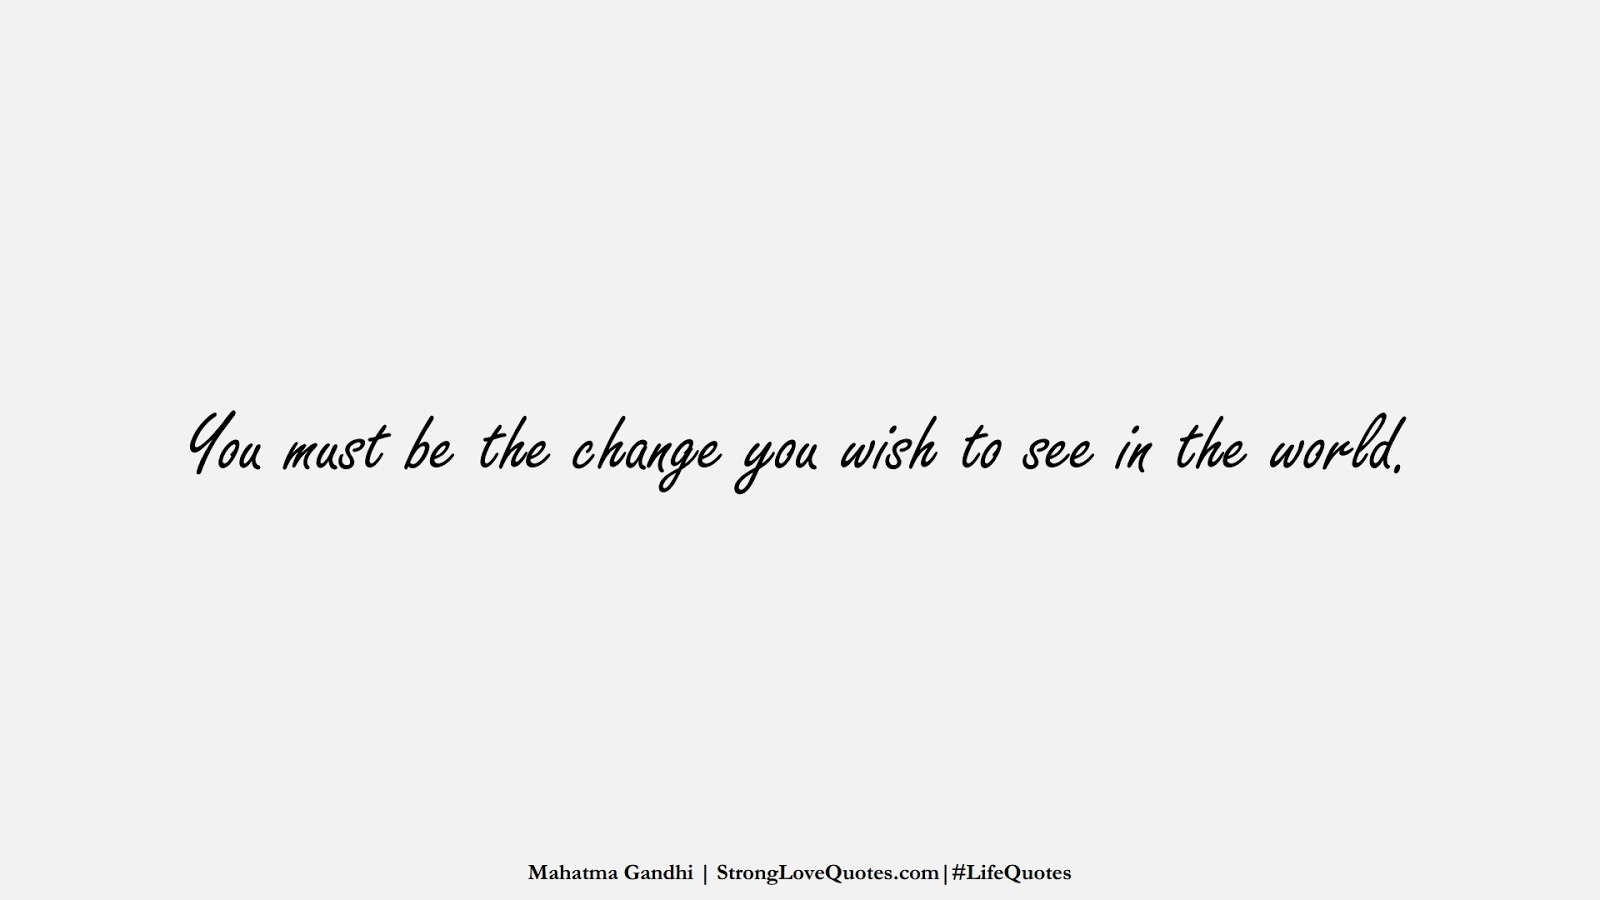 You must be the change you wish to see in the world. (Mahatma Gandhi);  #LifeQuotes